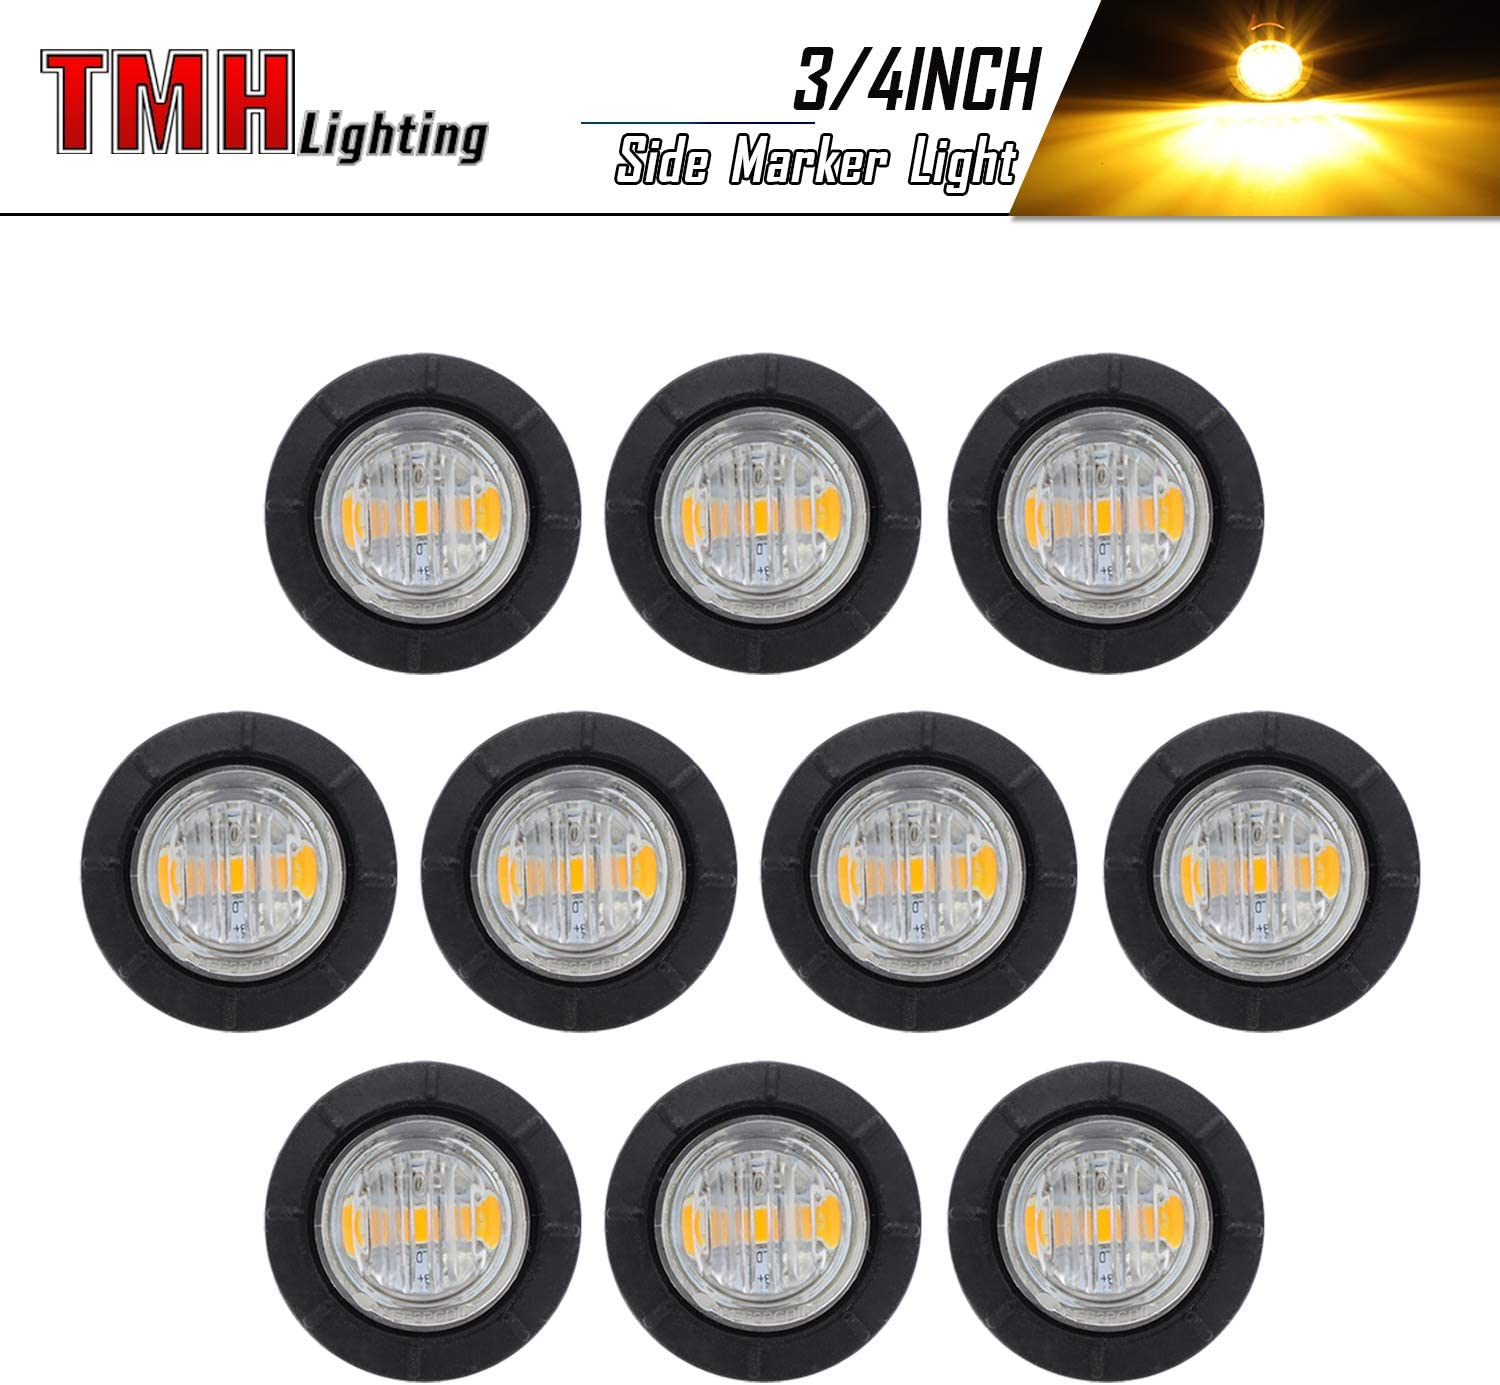 """10 Pcs TMH 3/4"""" Inch Mount Clear White LENS & Amber LED Clearance Markers, side marker lights, led marker lights, led side marker lights, led trailer marker lights, trailer marker light"""